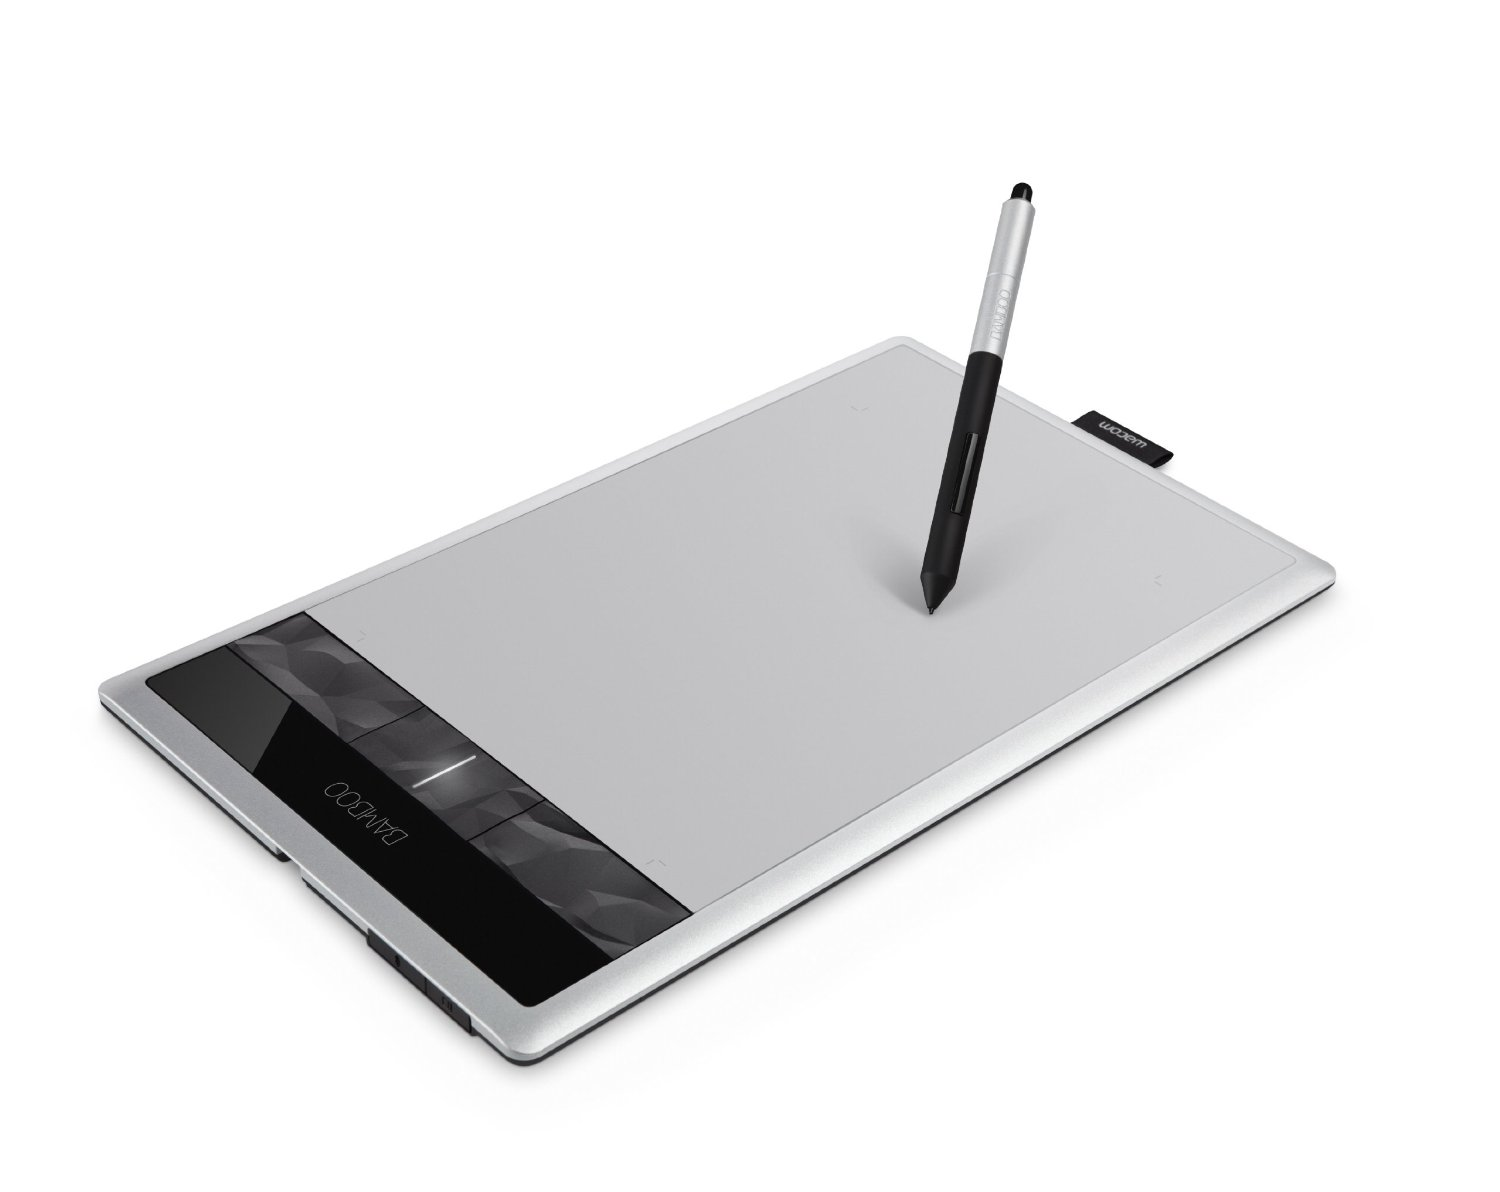 Wacom Cth 670 Driver Windows 10 Graphics Tablet Download Wacom